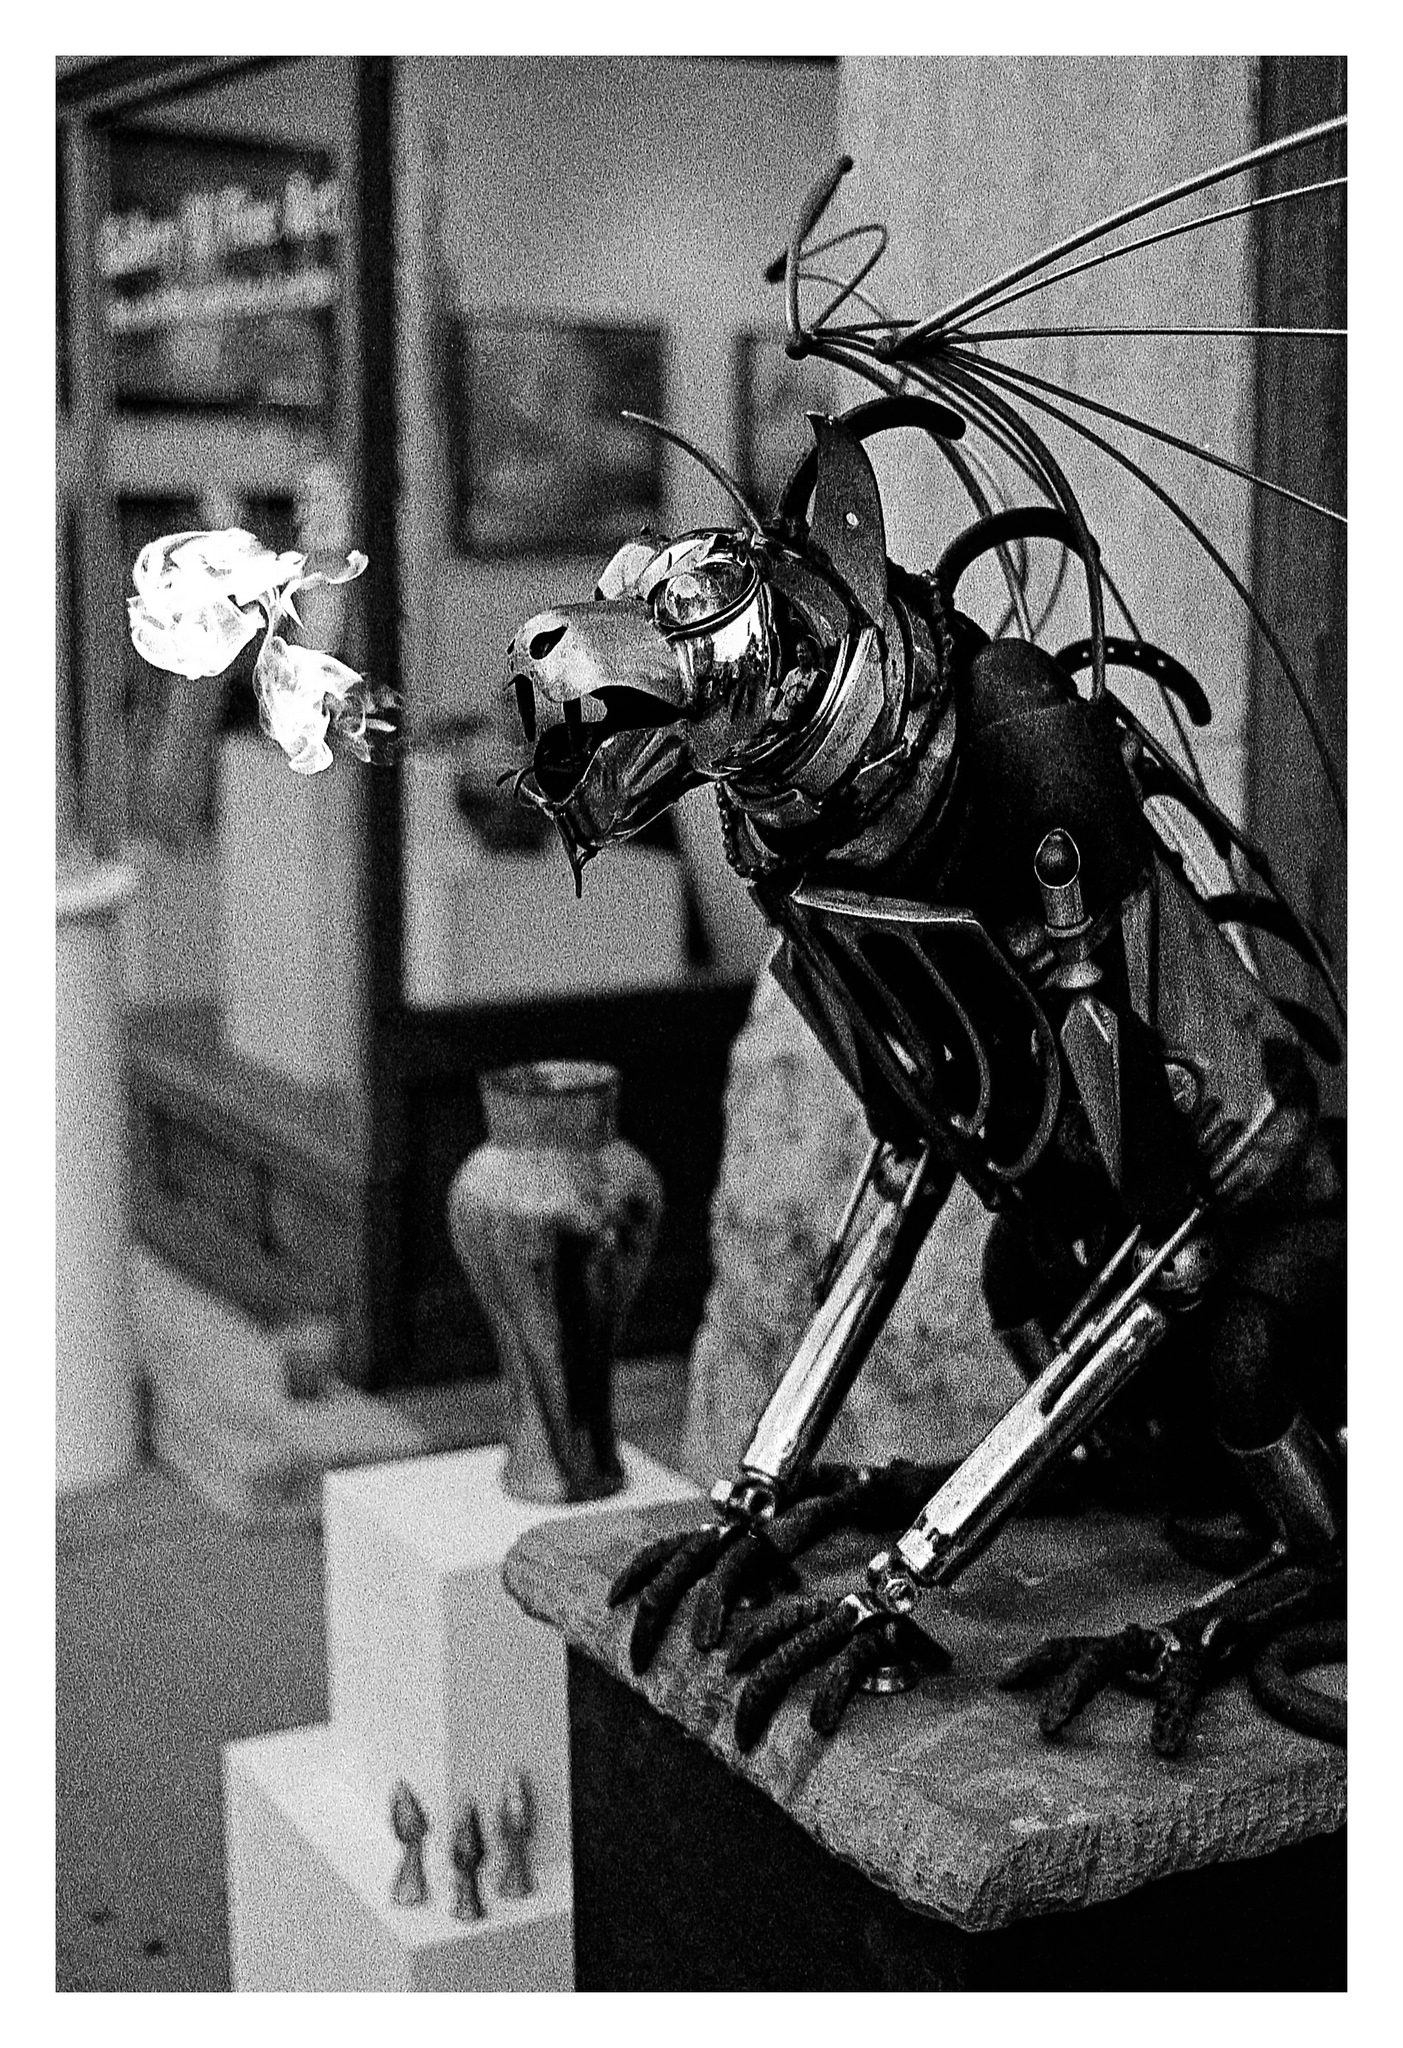 Flame-breathing Gargoyle - Nikon F5 with 50mm f/1.4 lens at f/2.8 in A-Priority mode on Kodak TMAX P3200 film